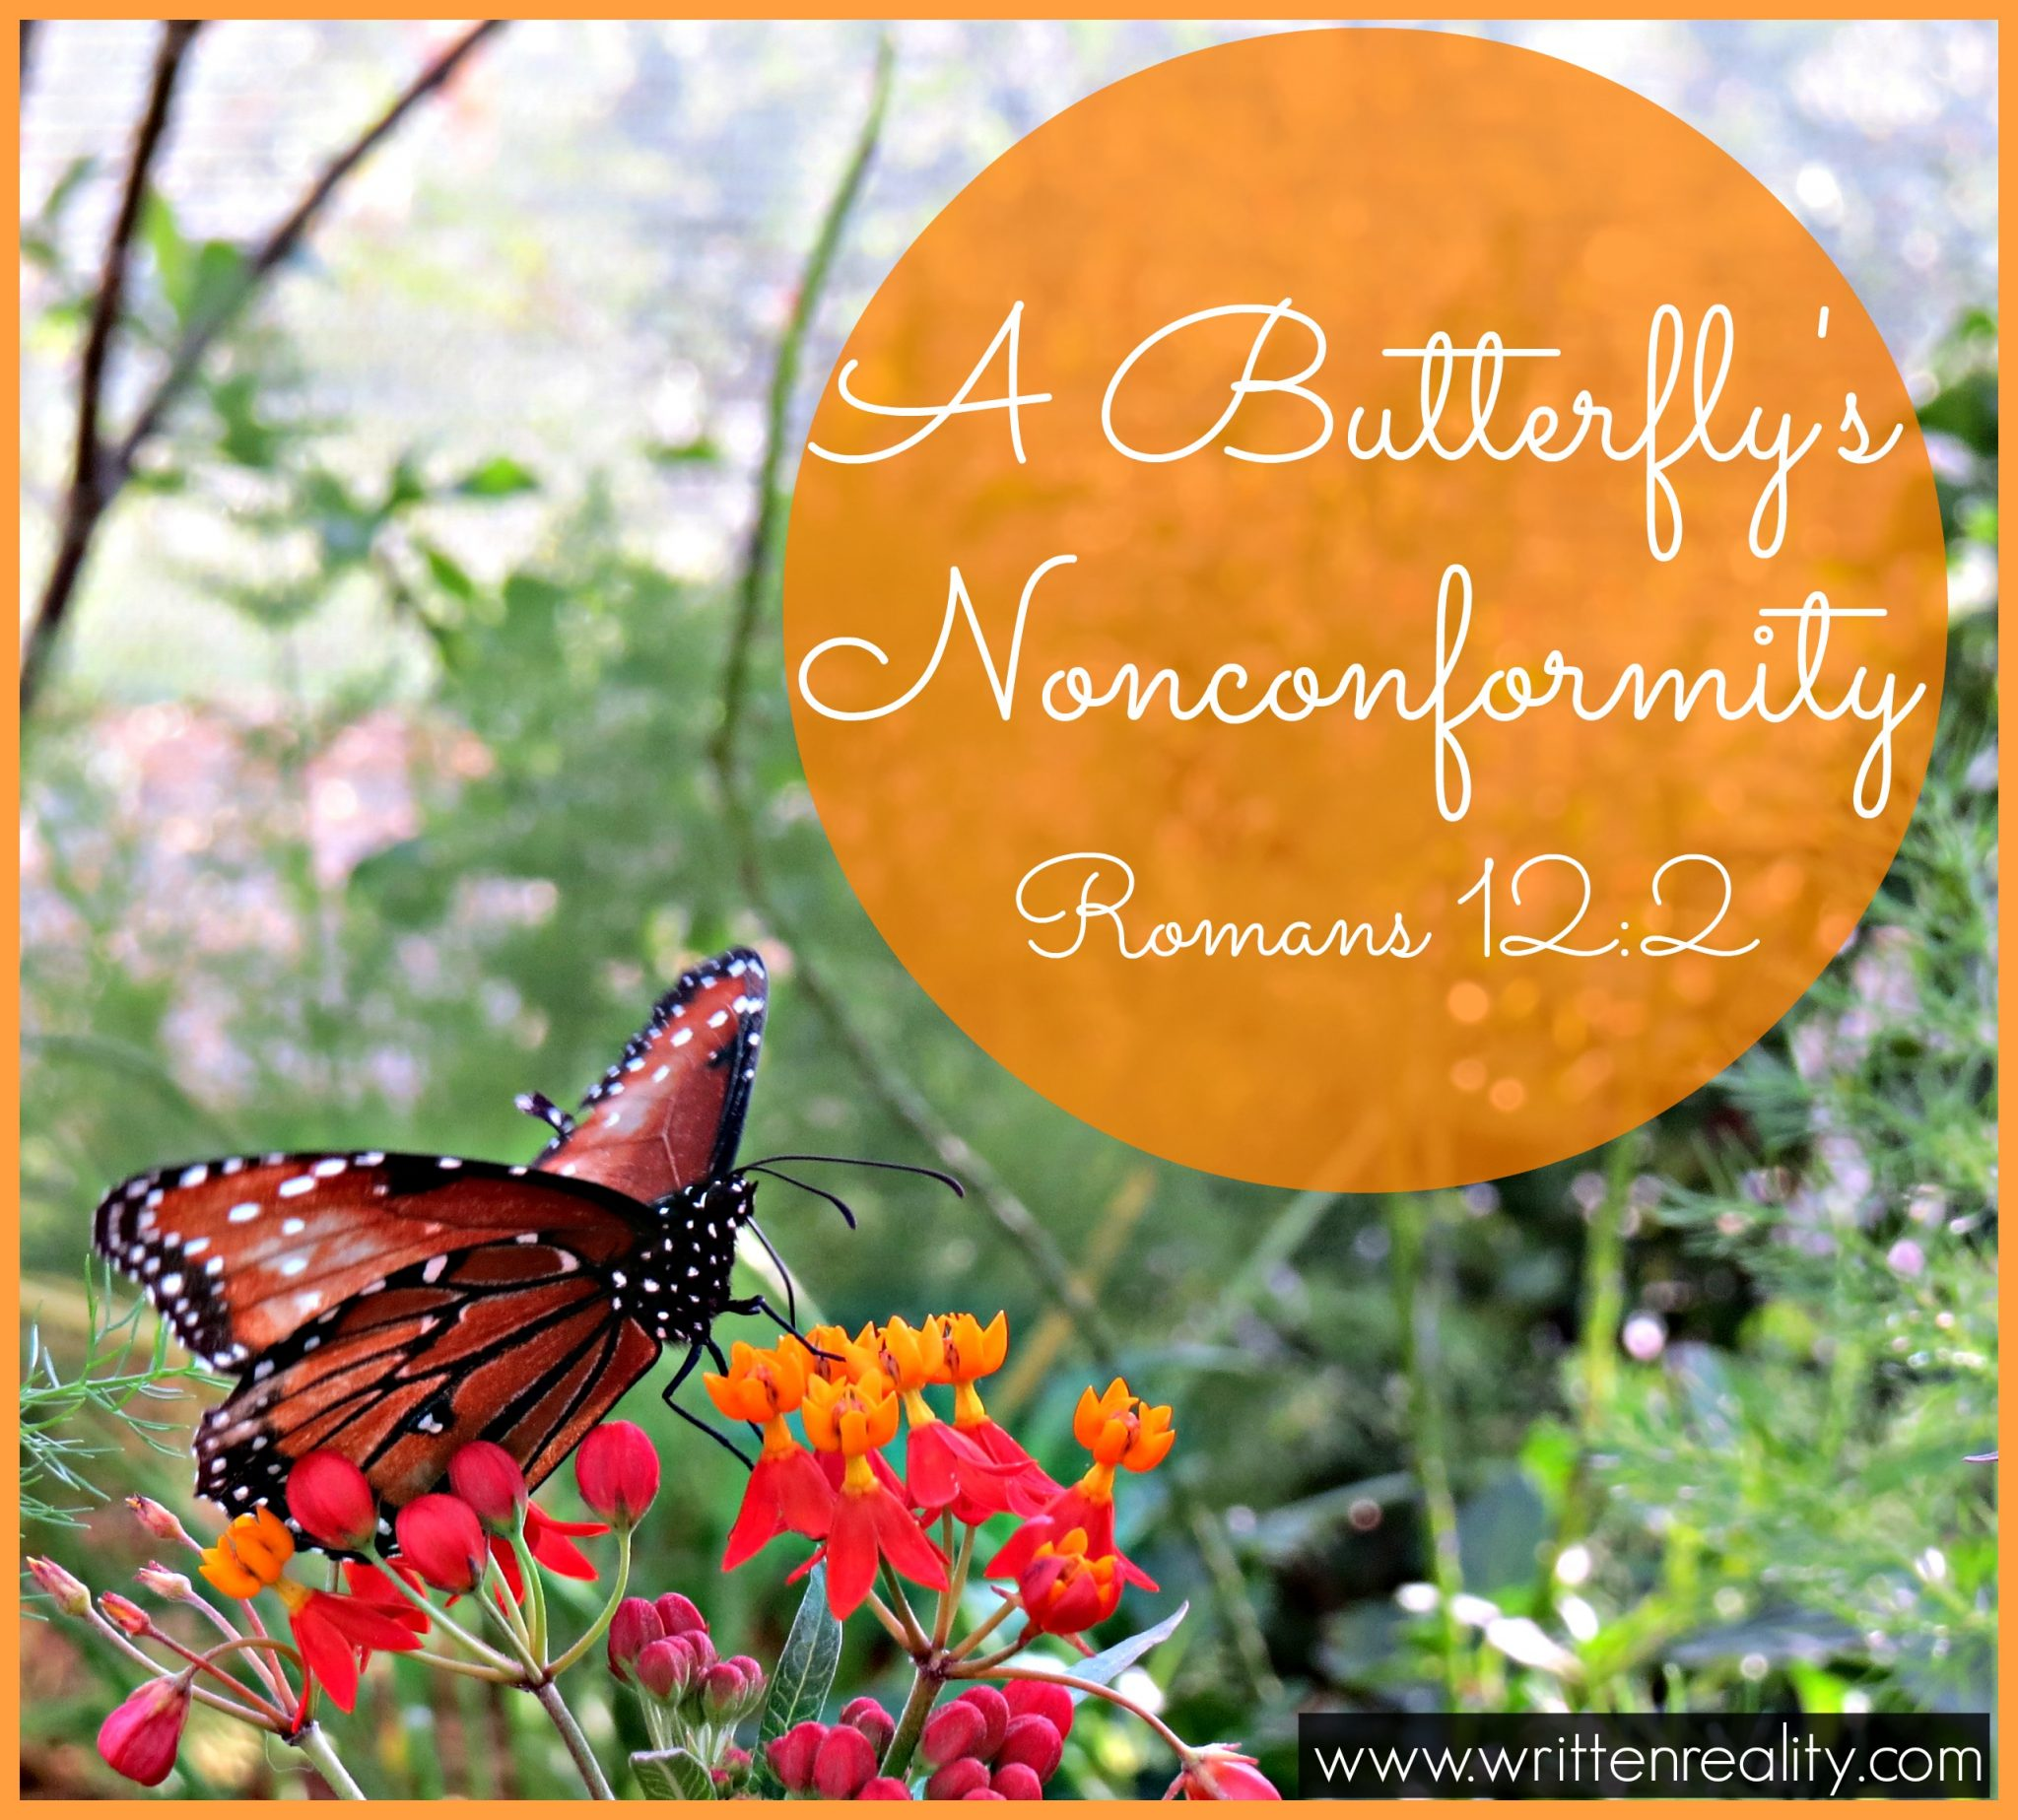 butterfly's nonconformity